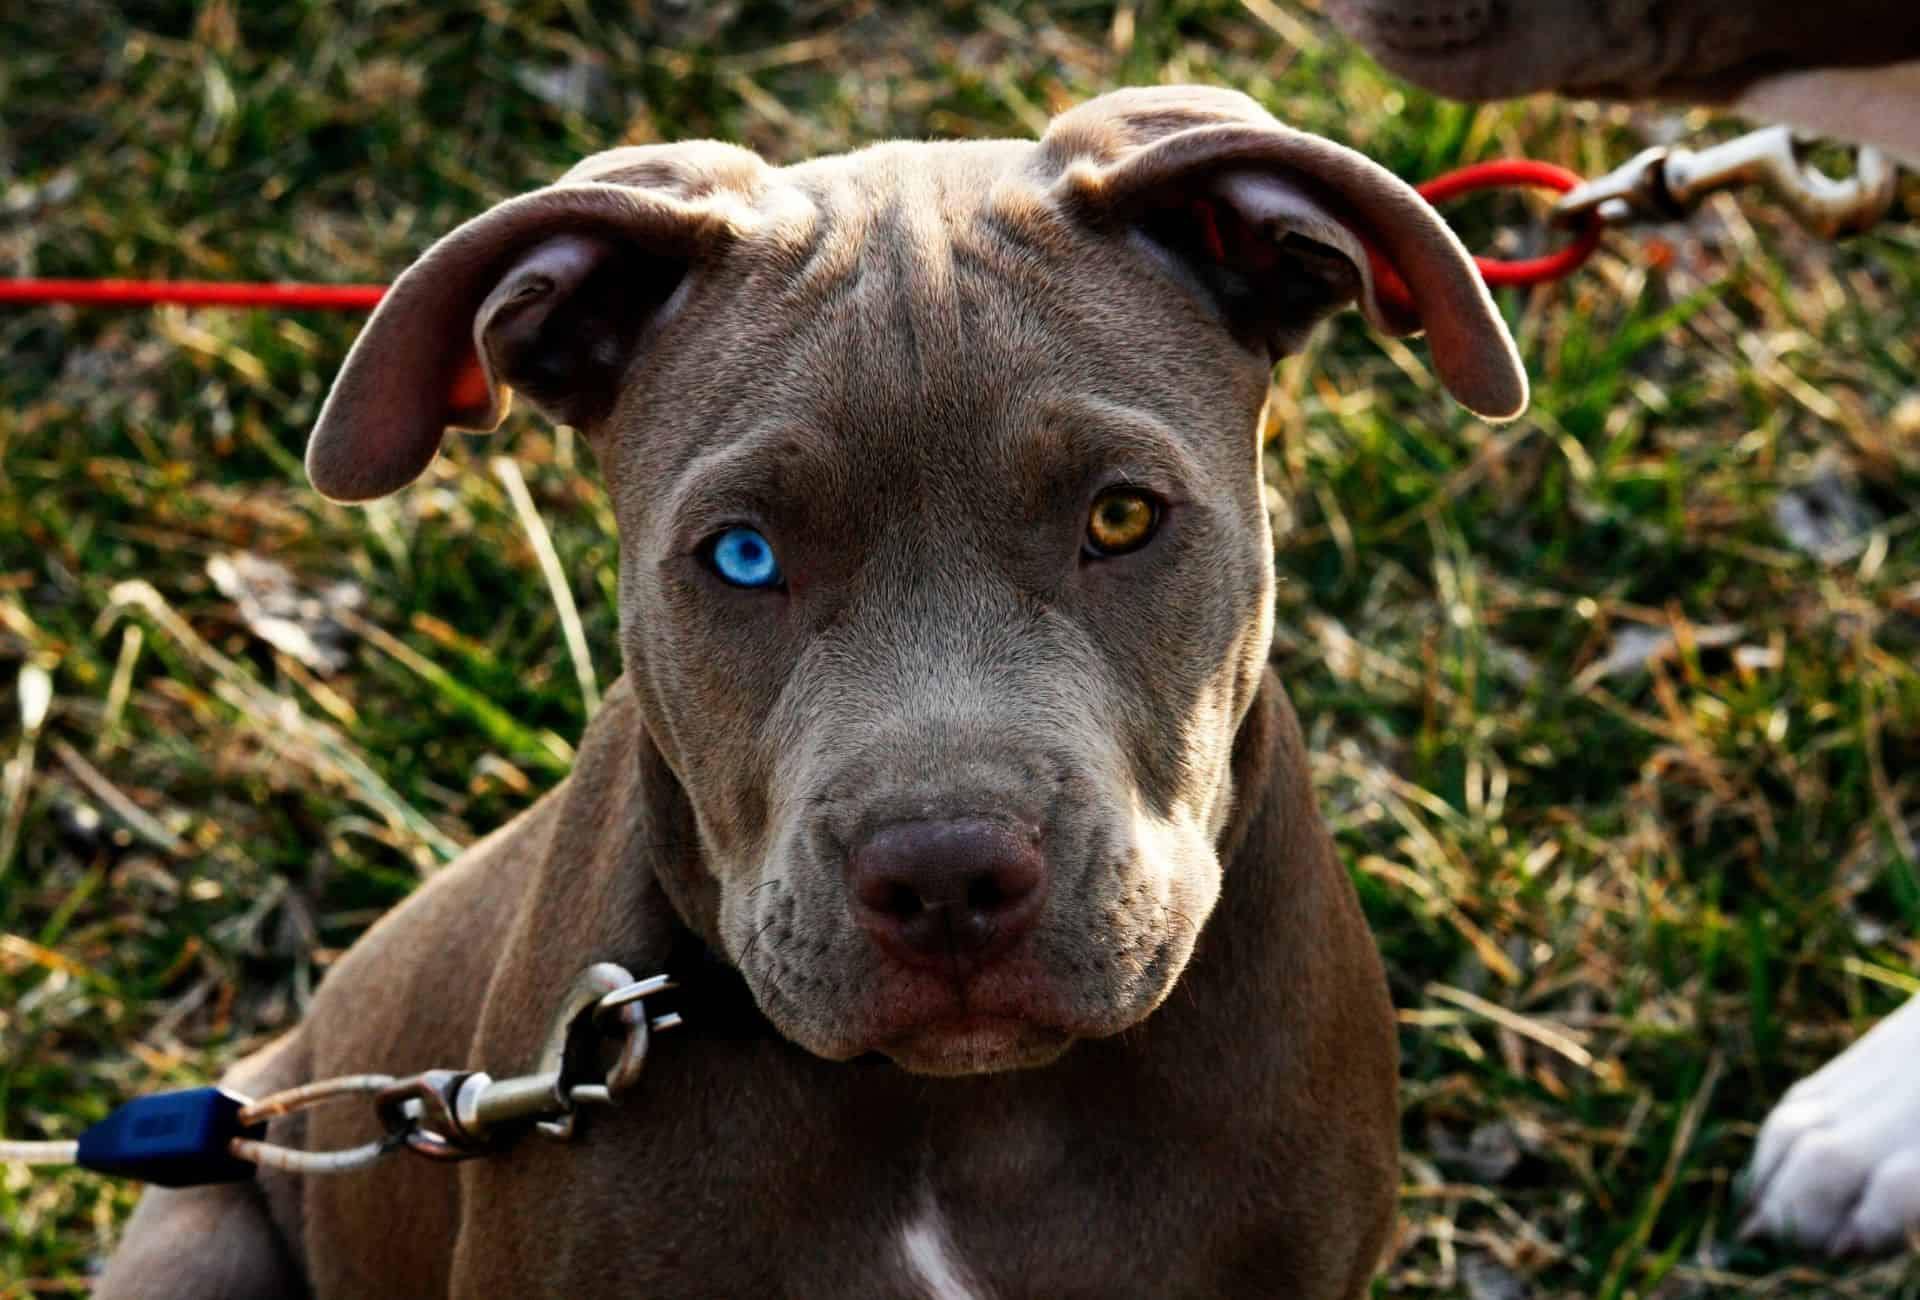 Pitbull with a crystal clear blue eye and a brown eye.